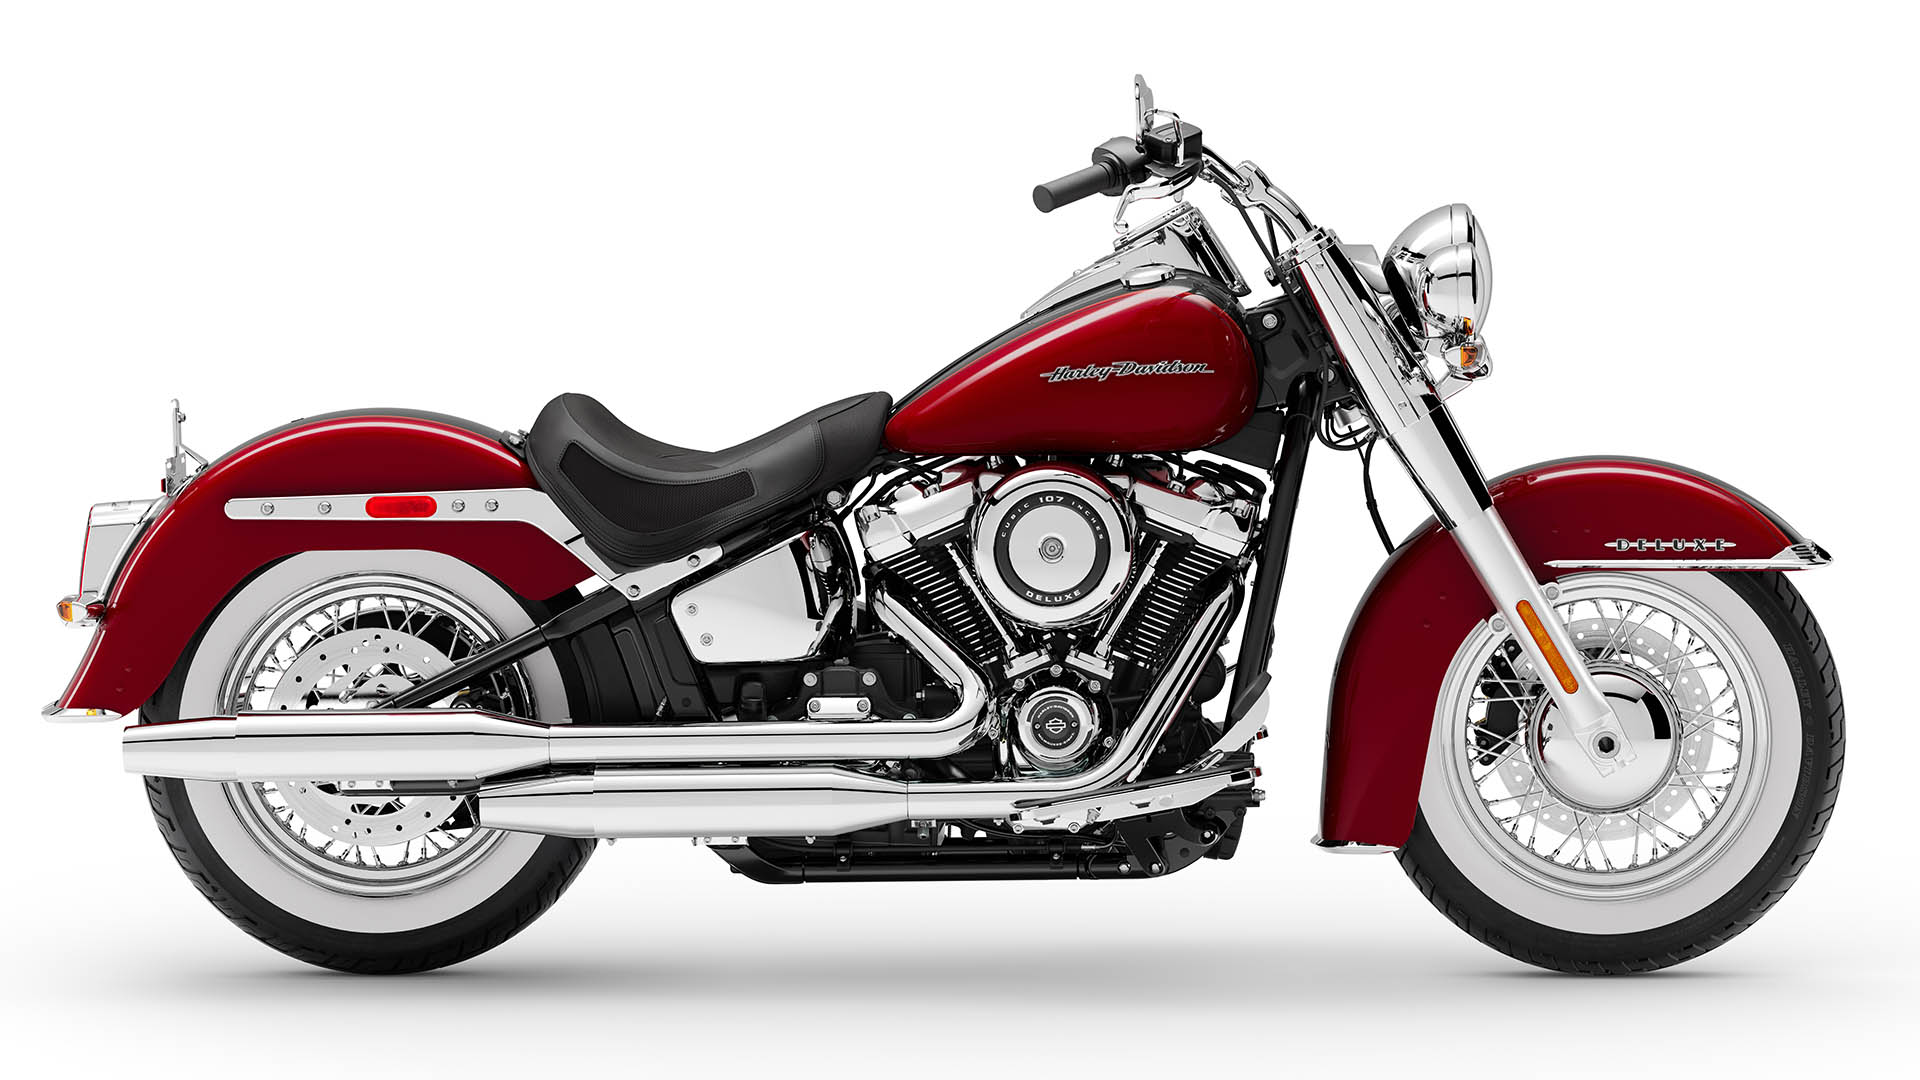 2020 Harley-Davidson Deluxe Buyer's Guide